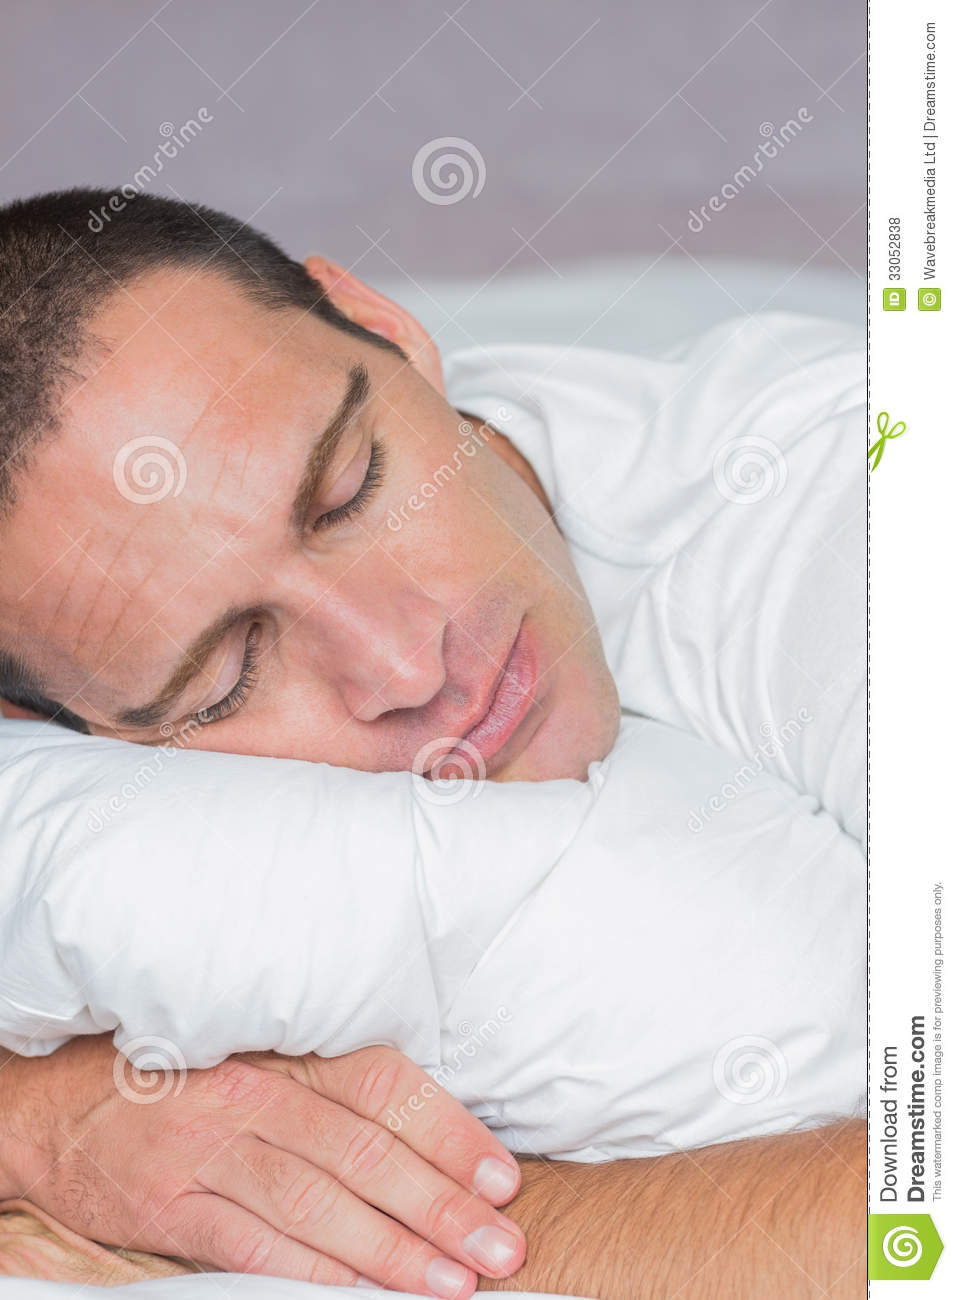 Handsome man sleeping on his pillow stock photo image of asleep domicile 33052838 - Man bedroom photo ...